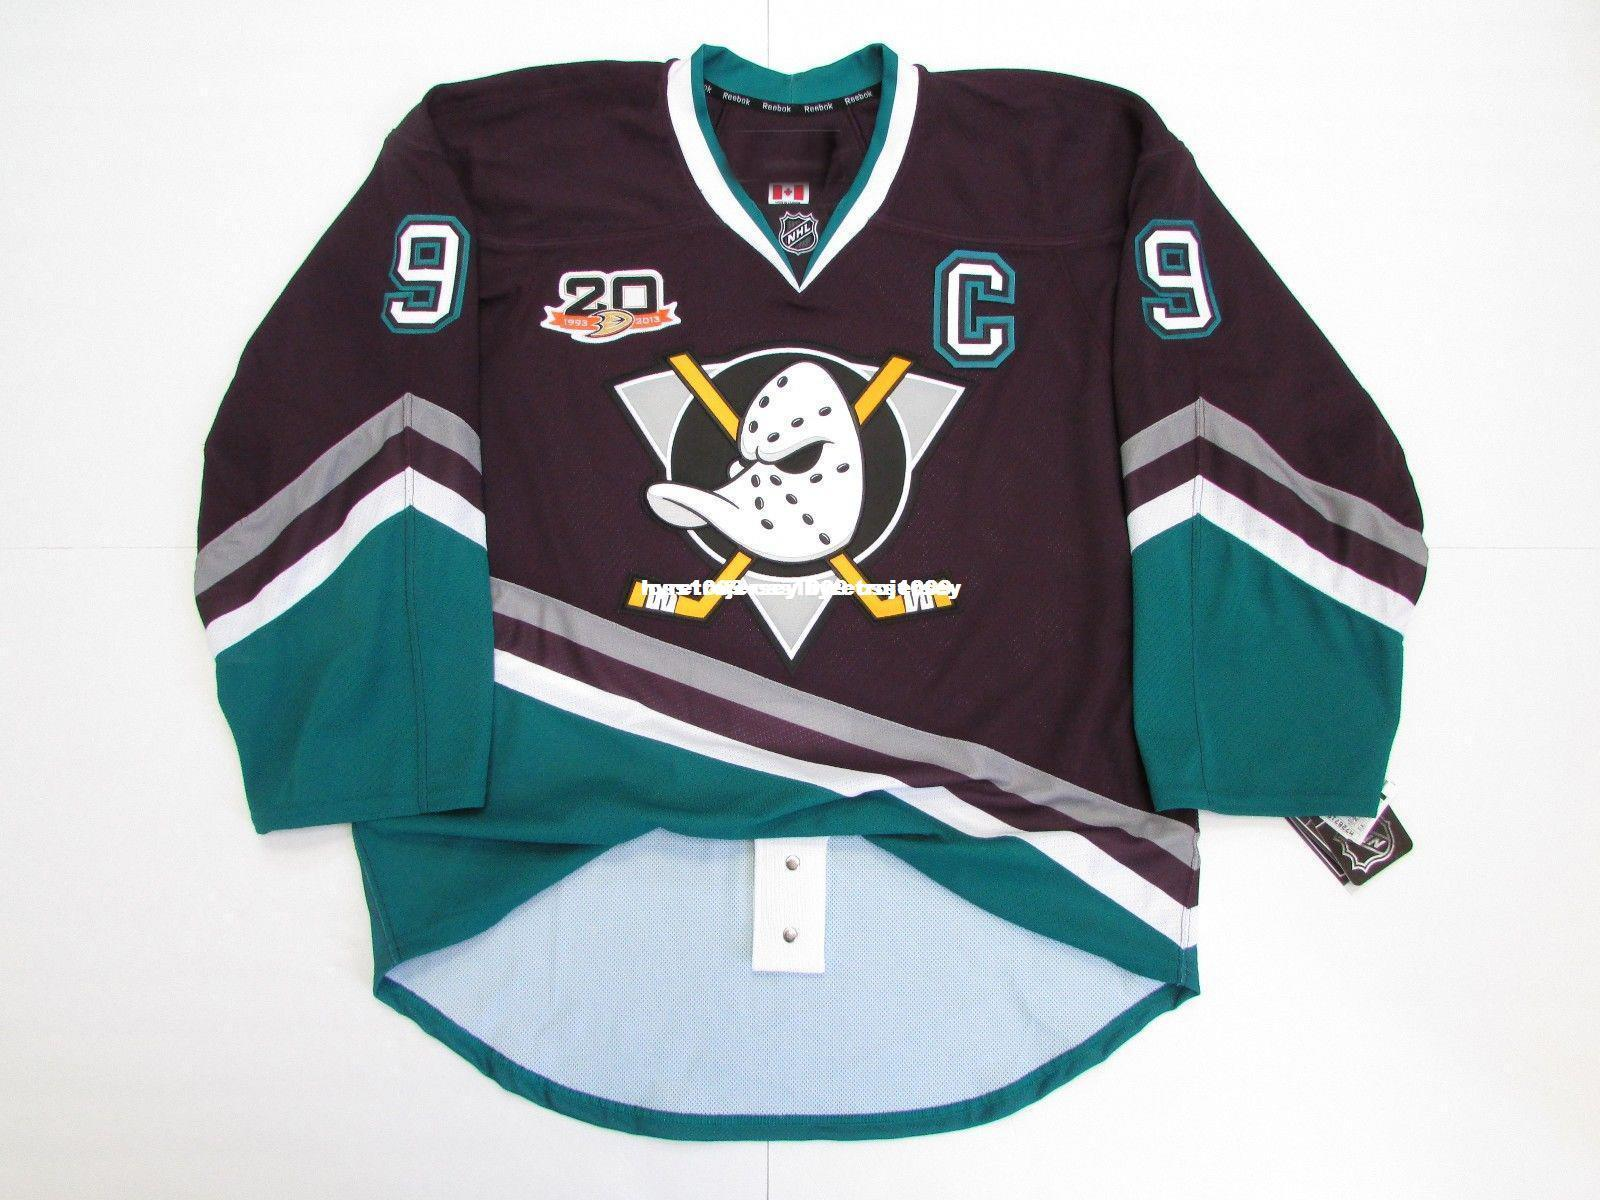 save off bef11 30b47 new arrivals anaheim ducks 20th anniversary jersey 8eb3a 1569c